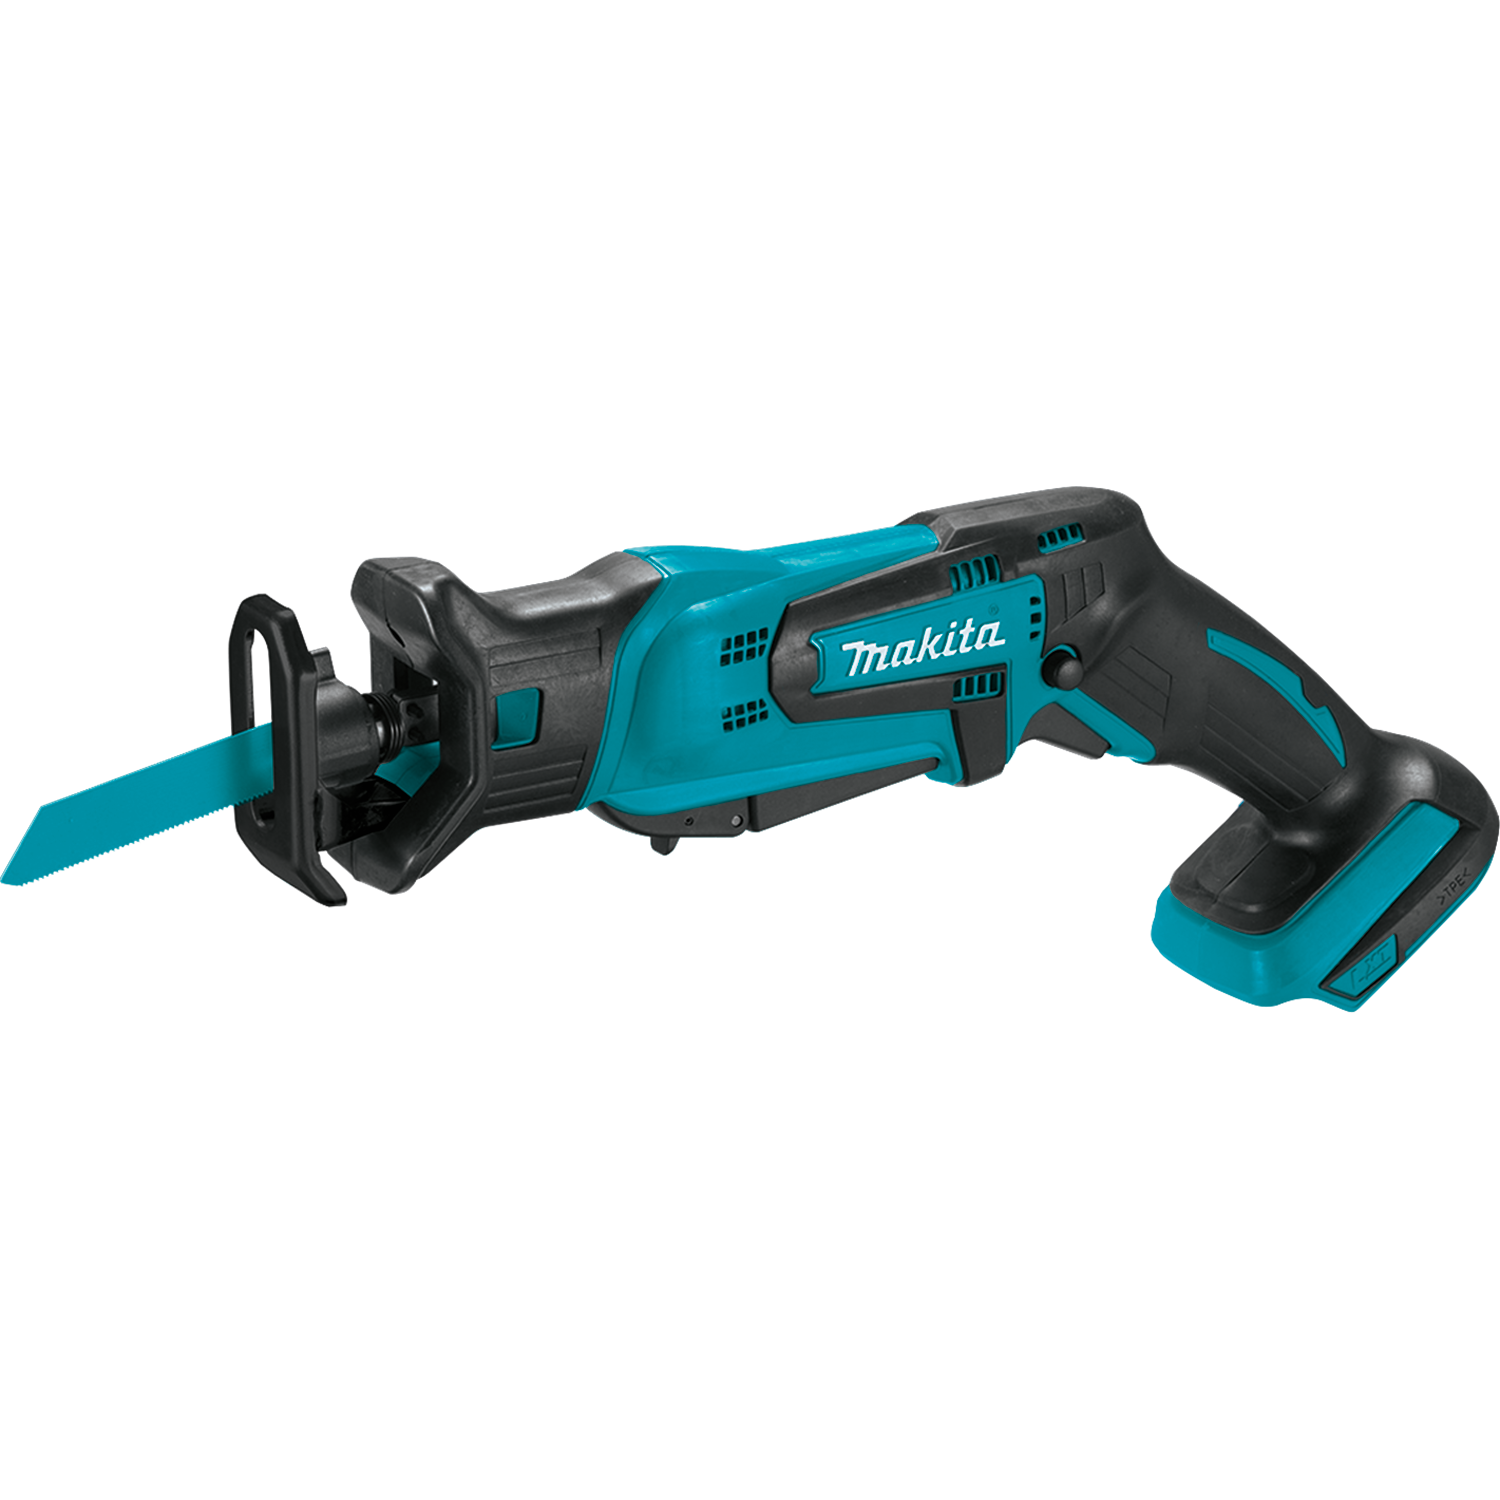 Makita usa product details xrj01z xrj01z greentooth Image collections